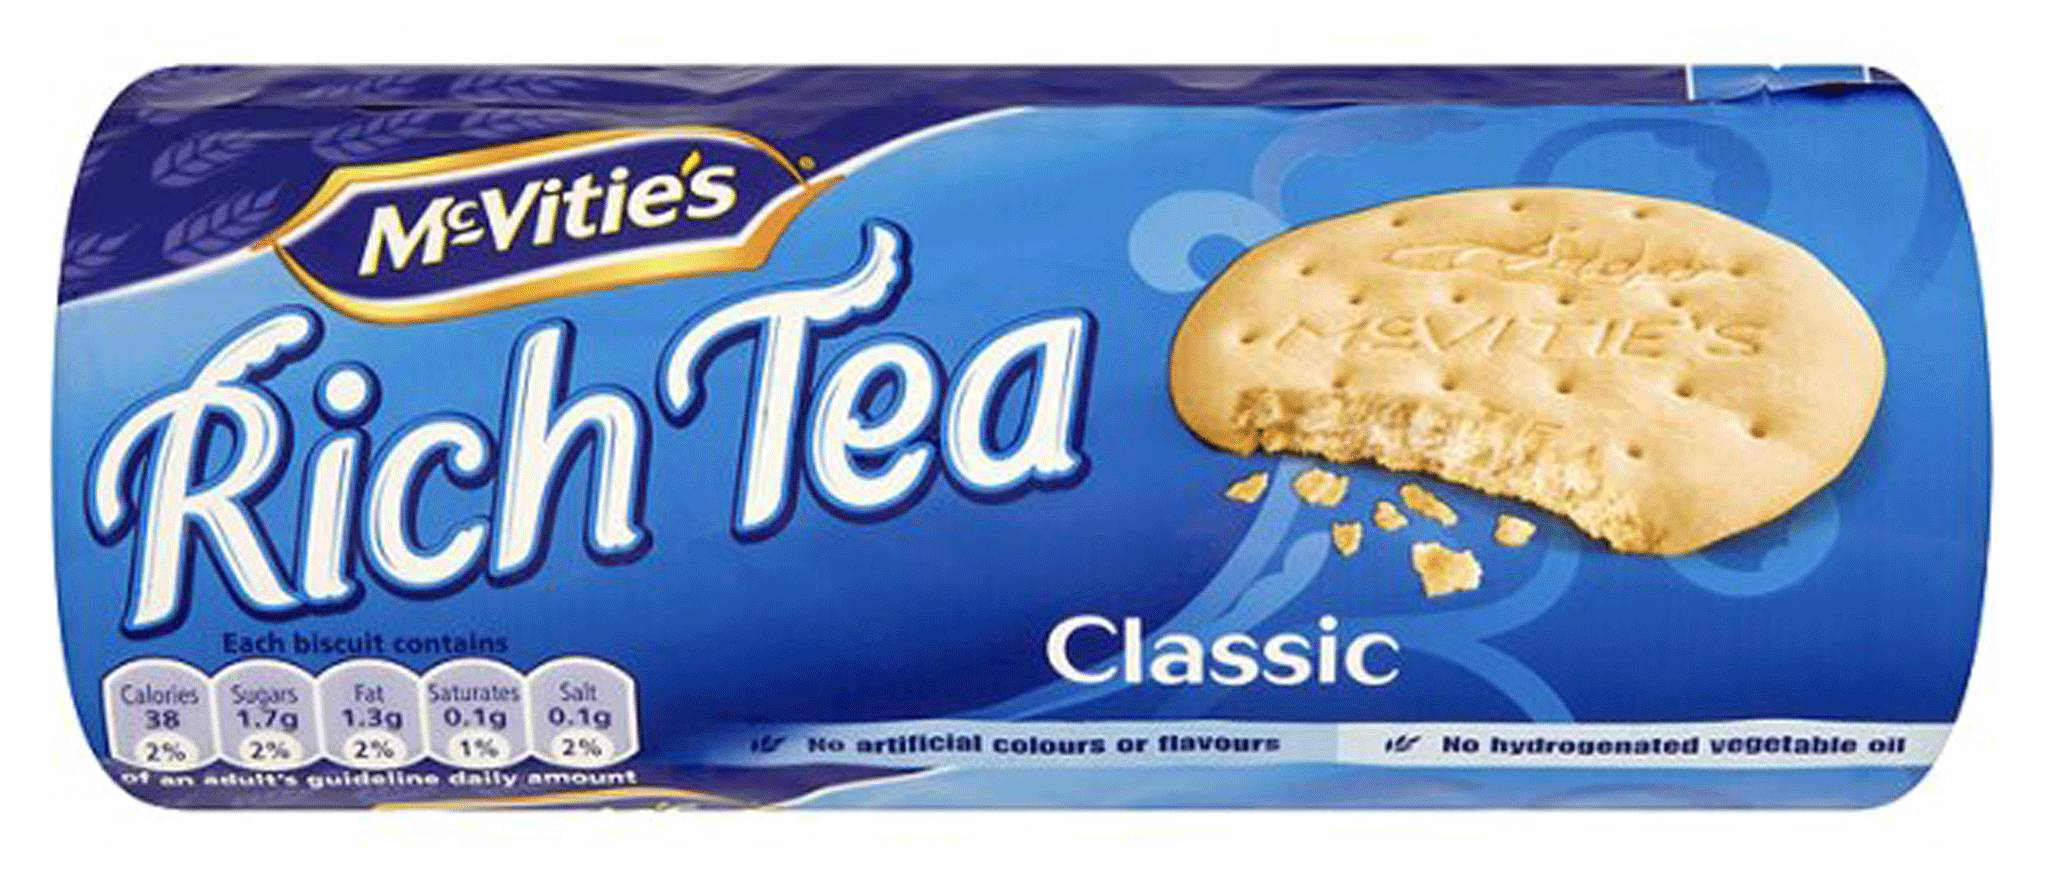 Rich Teas Are The Best Biscuits Hobnobs Are Soggy Imposters